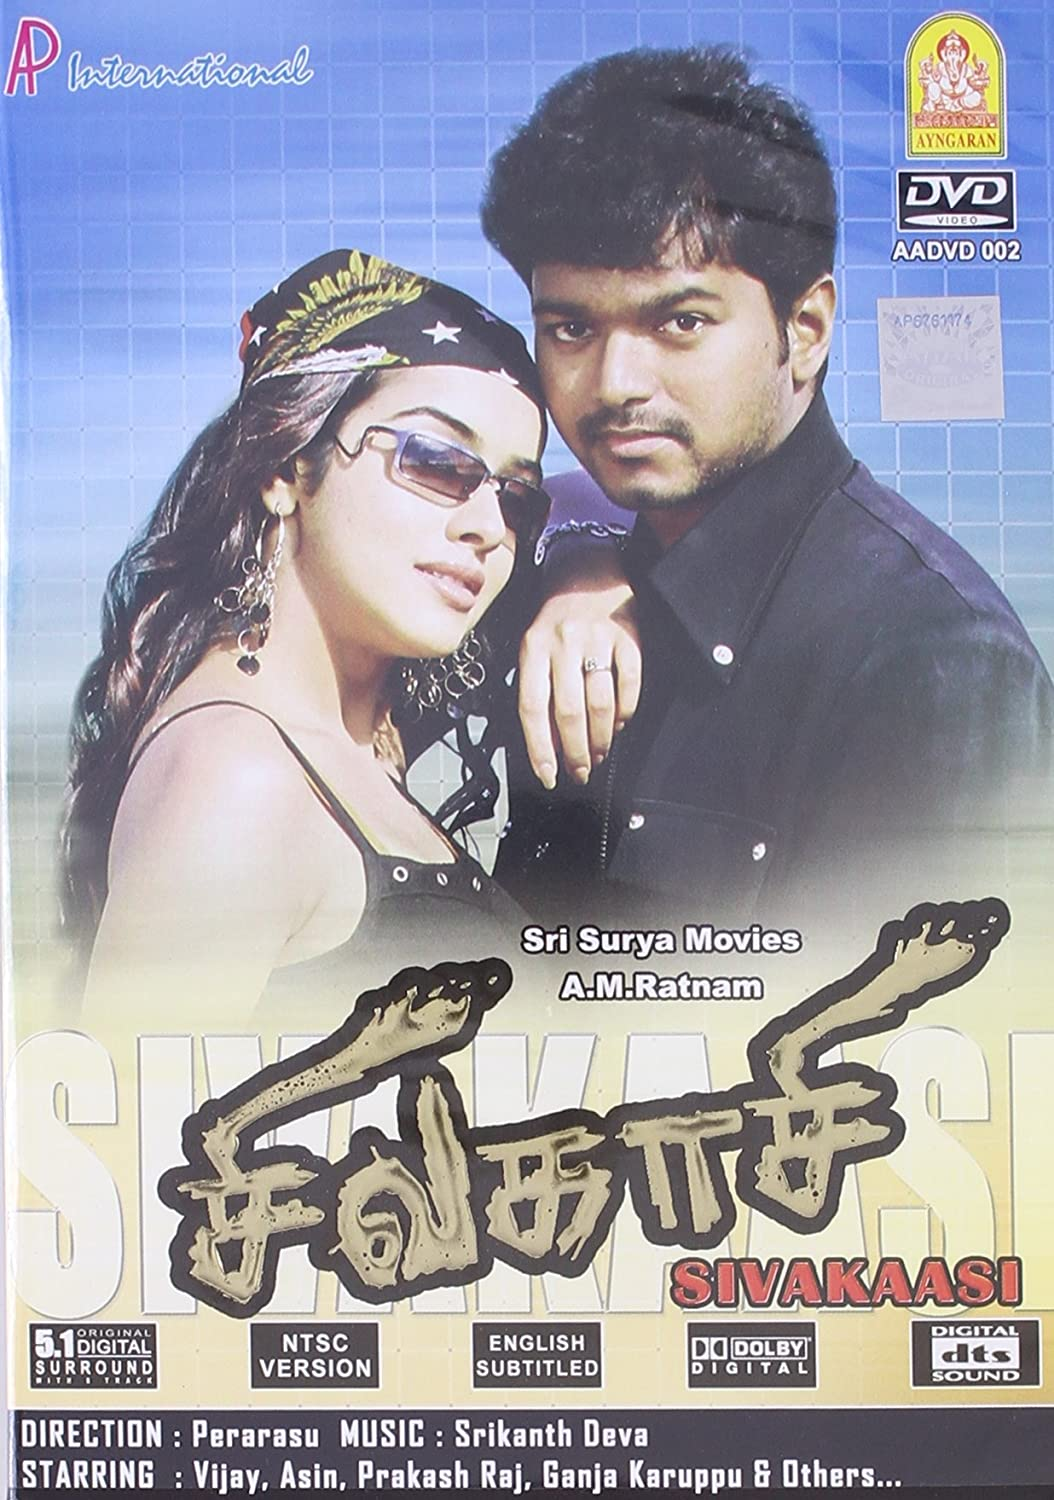 SIVAKAASI Original Tamil DVD Fully Boxed: Amazon.co.uk: DVD & Blu-ray